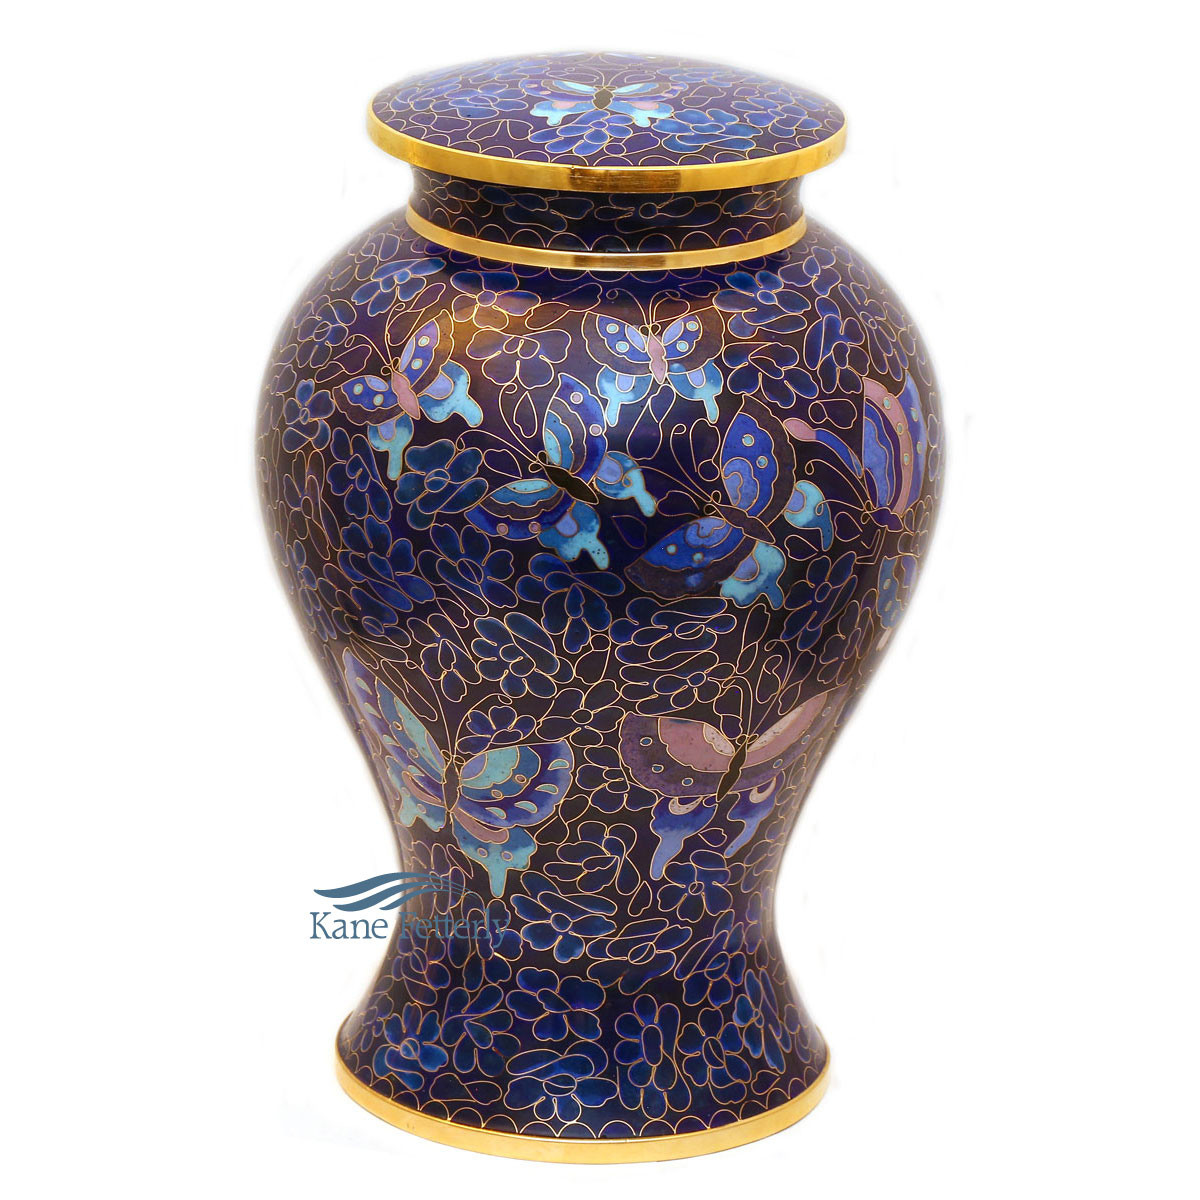 U8591 Cloisonné urn with butterflies